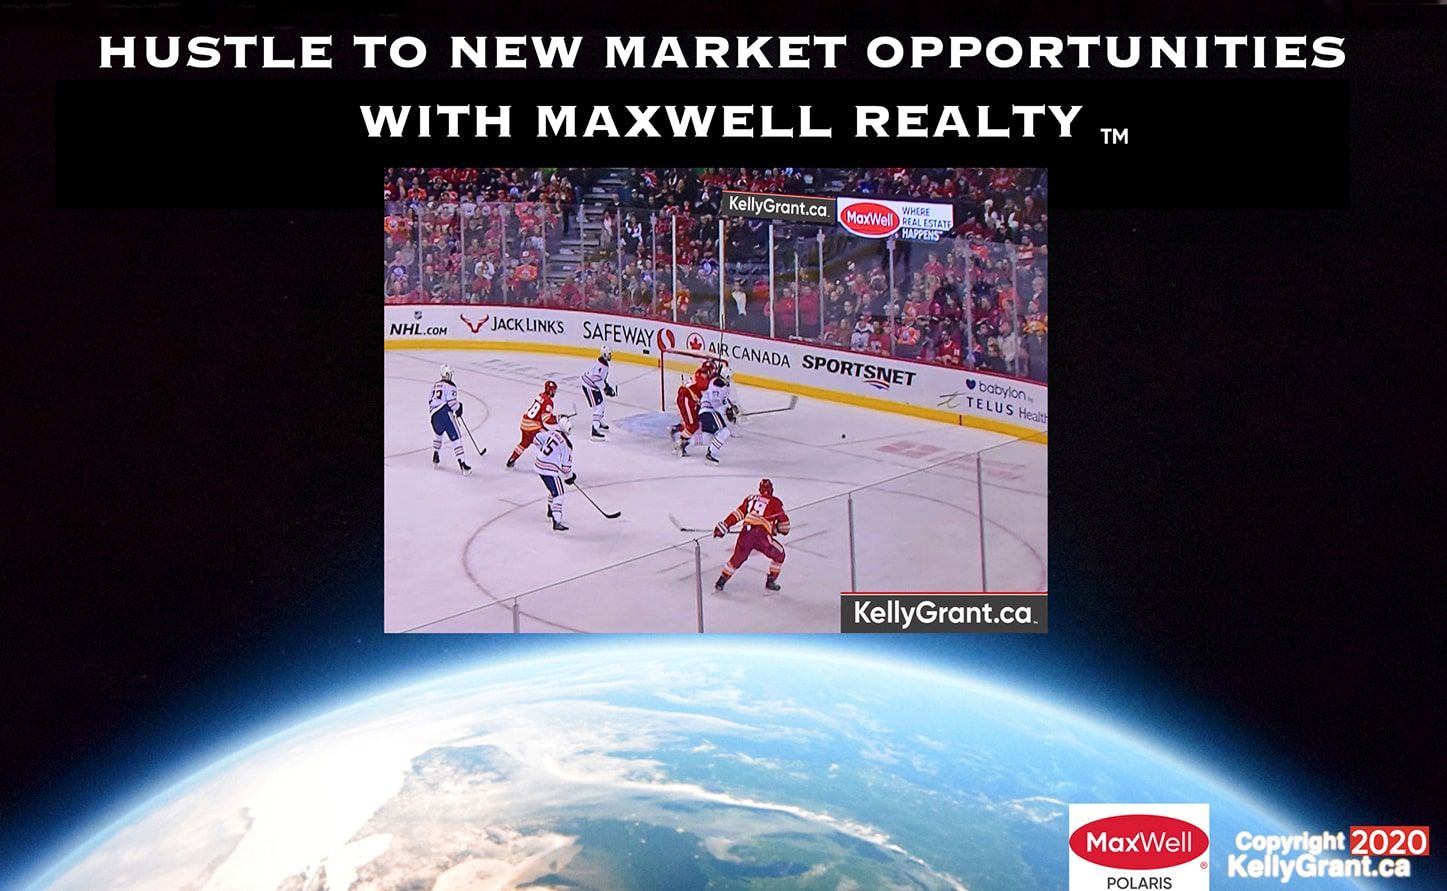 #24-KG MaxWell Hustle to New Market Opportunities.jpg